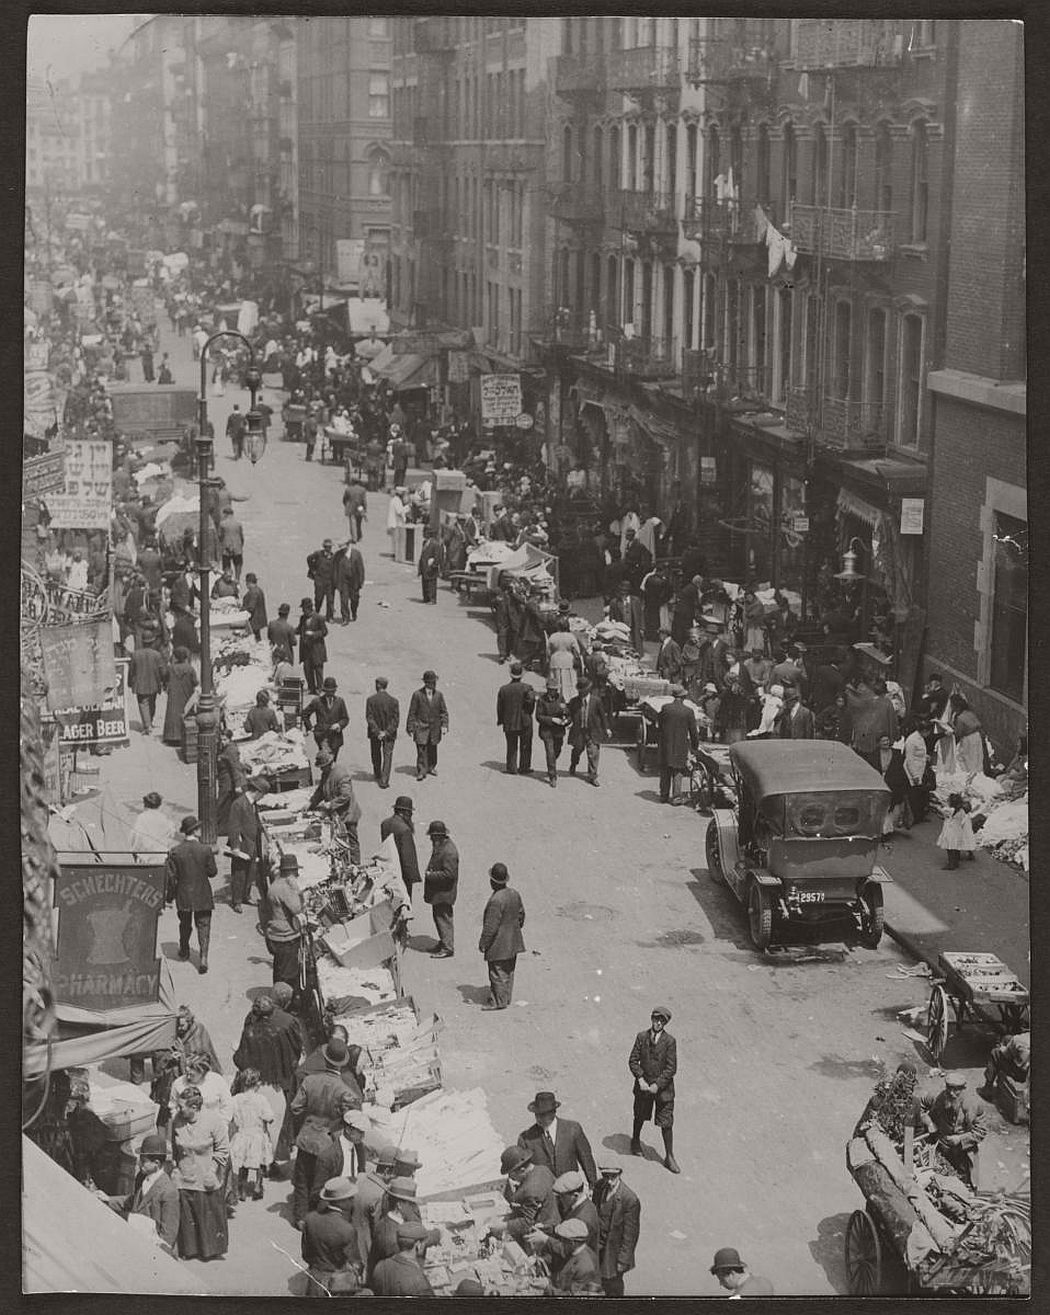 vintage-pushcart-markets-in-new-york-early-20th-century-1900s-07